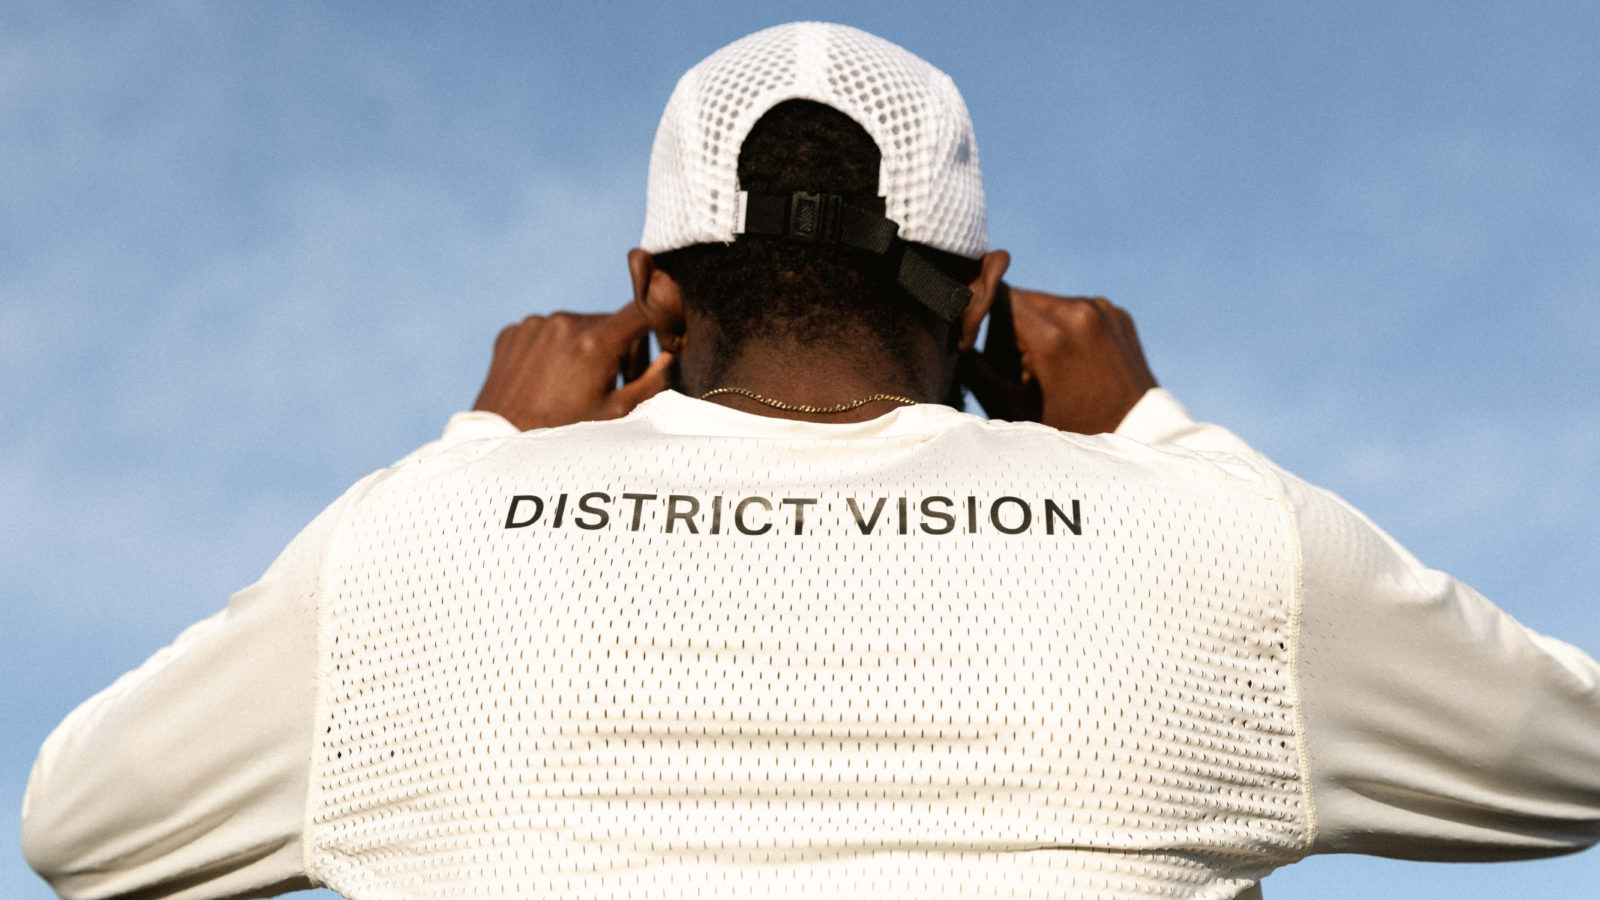 District Vision par Kyle Miyamoto